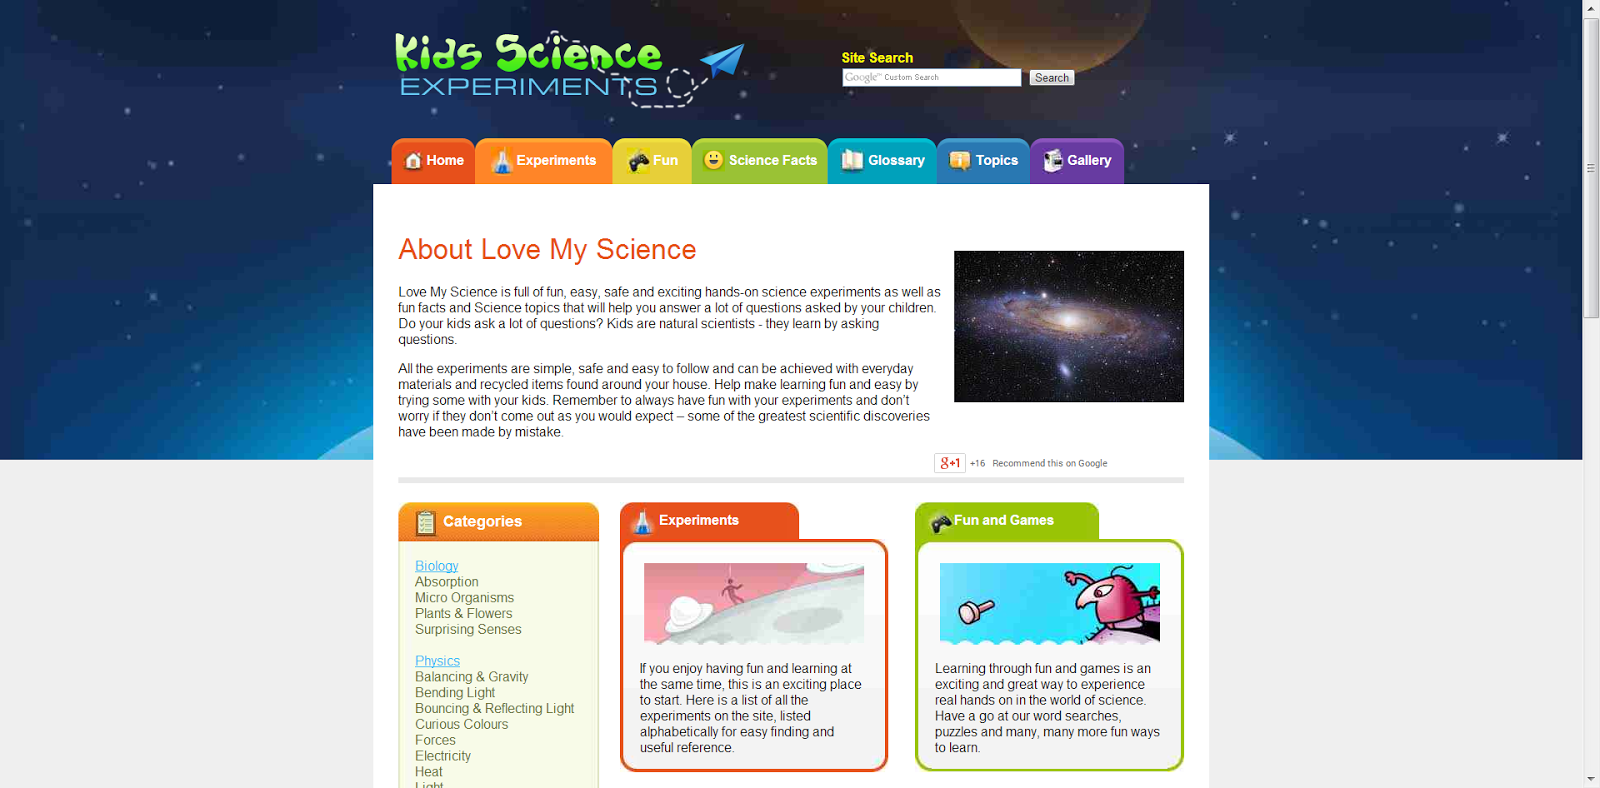 learning never stops websites that help make learning science fun there are well over one hundred experiments that cover biology chemistry and even physics the site also has fun science games and trivia for kids to